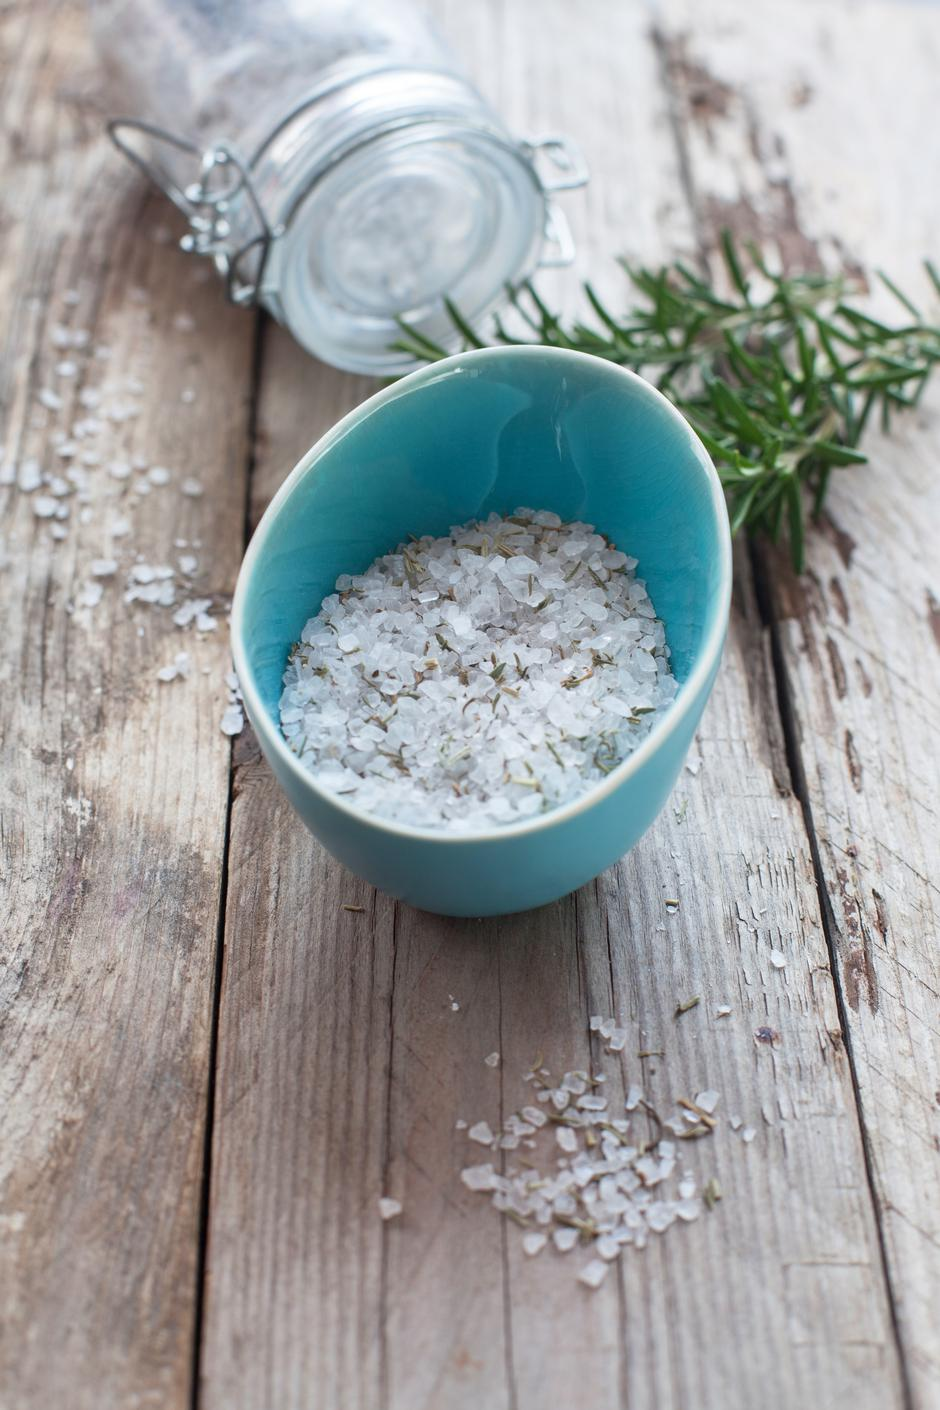 Homemade rosemary sea salt | Autor: Photographer: Natalie Barth